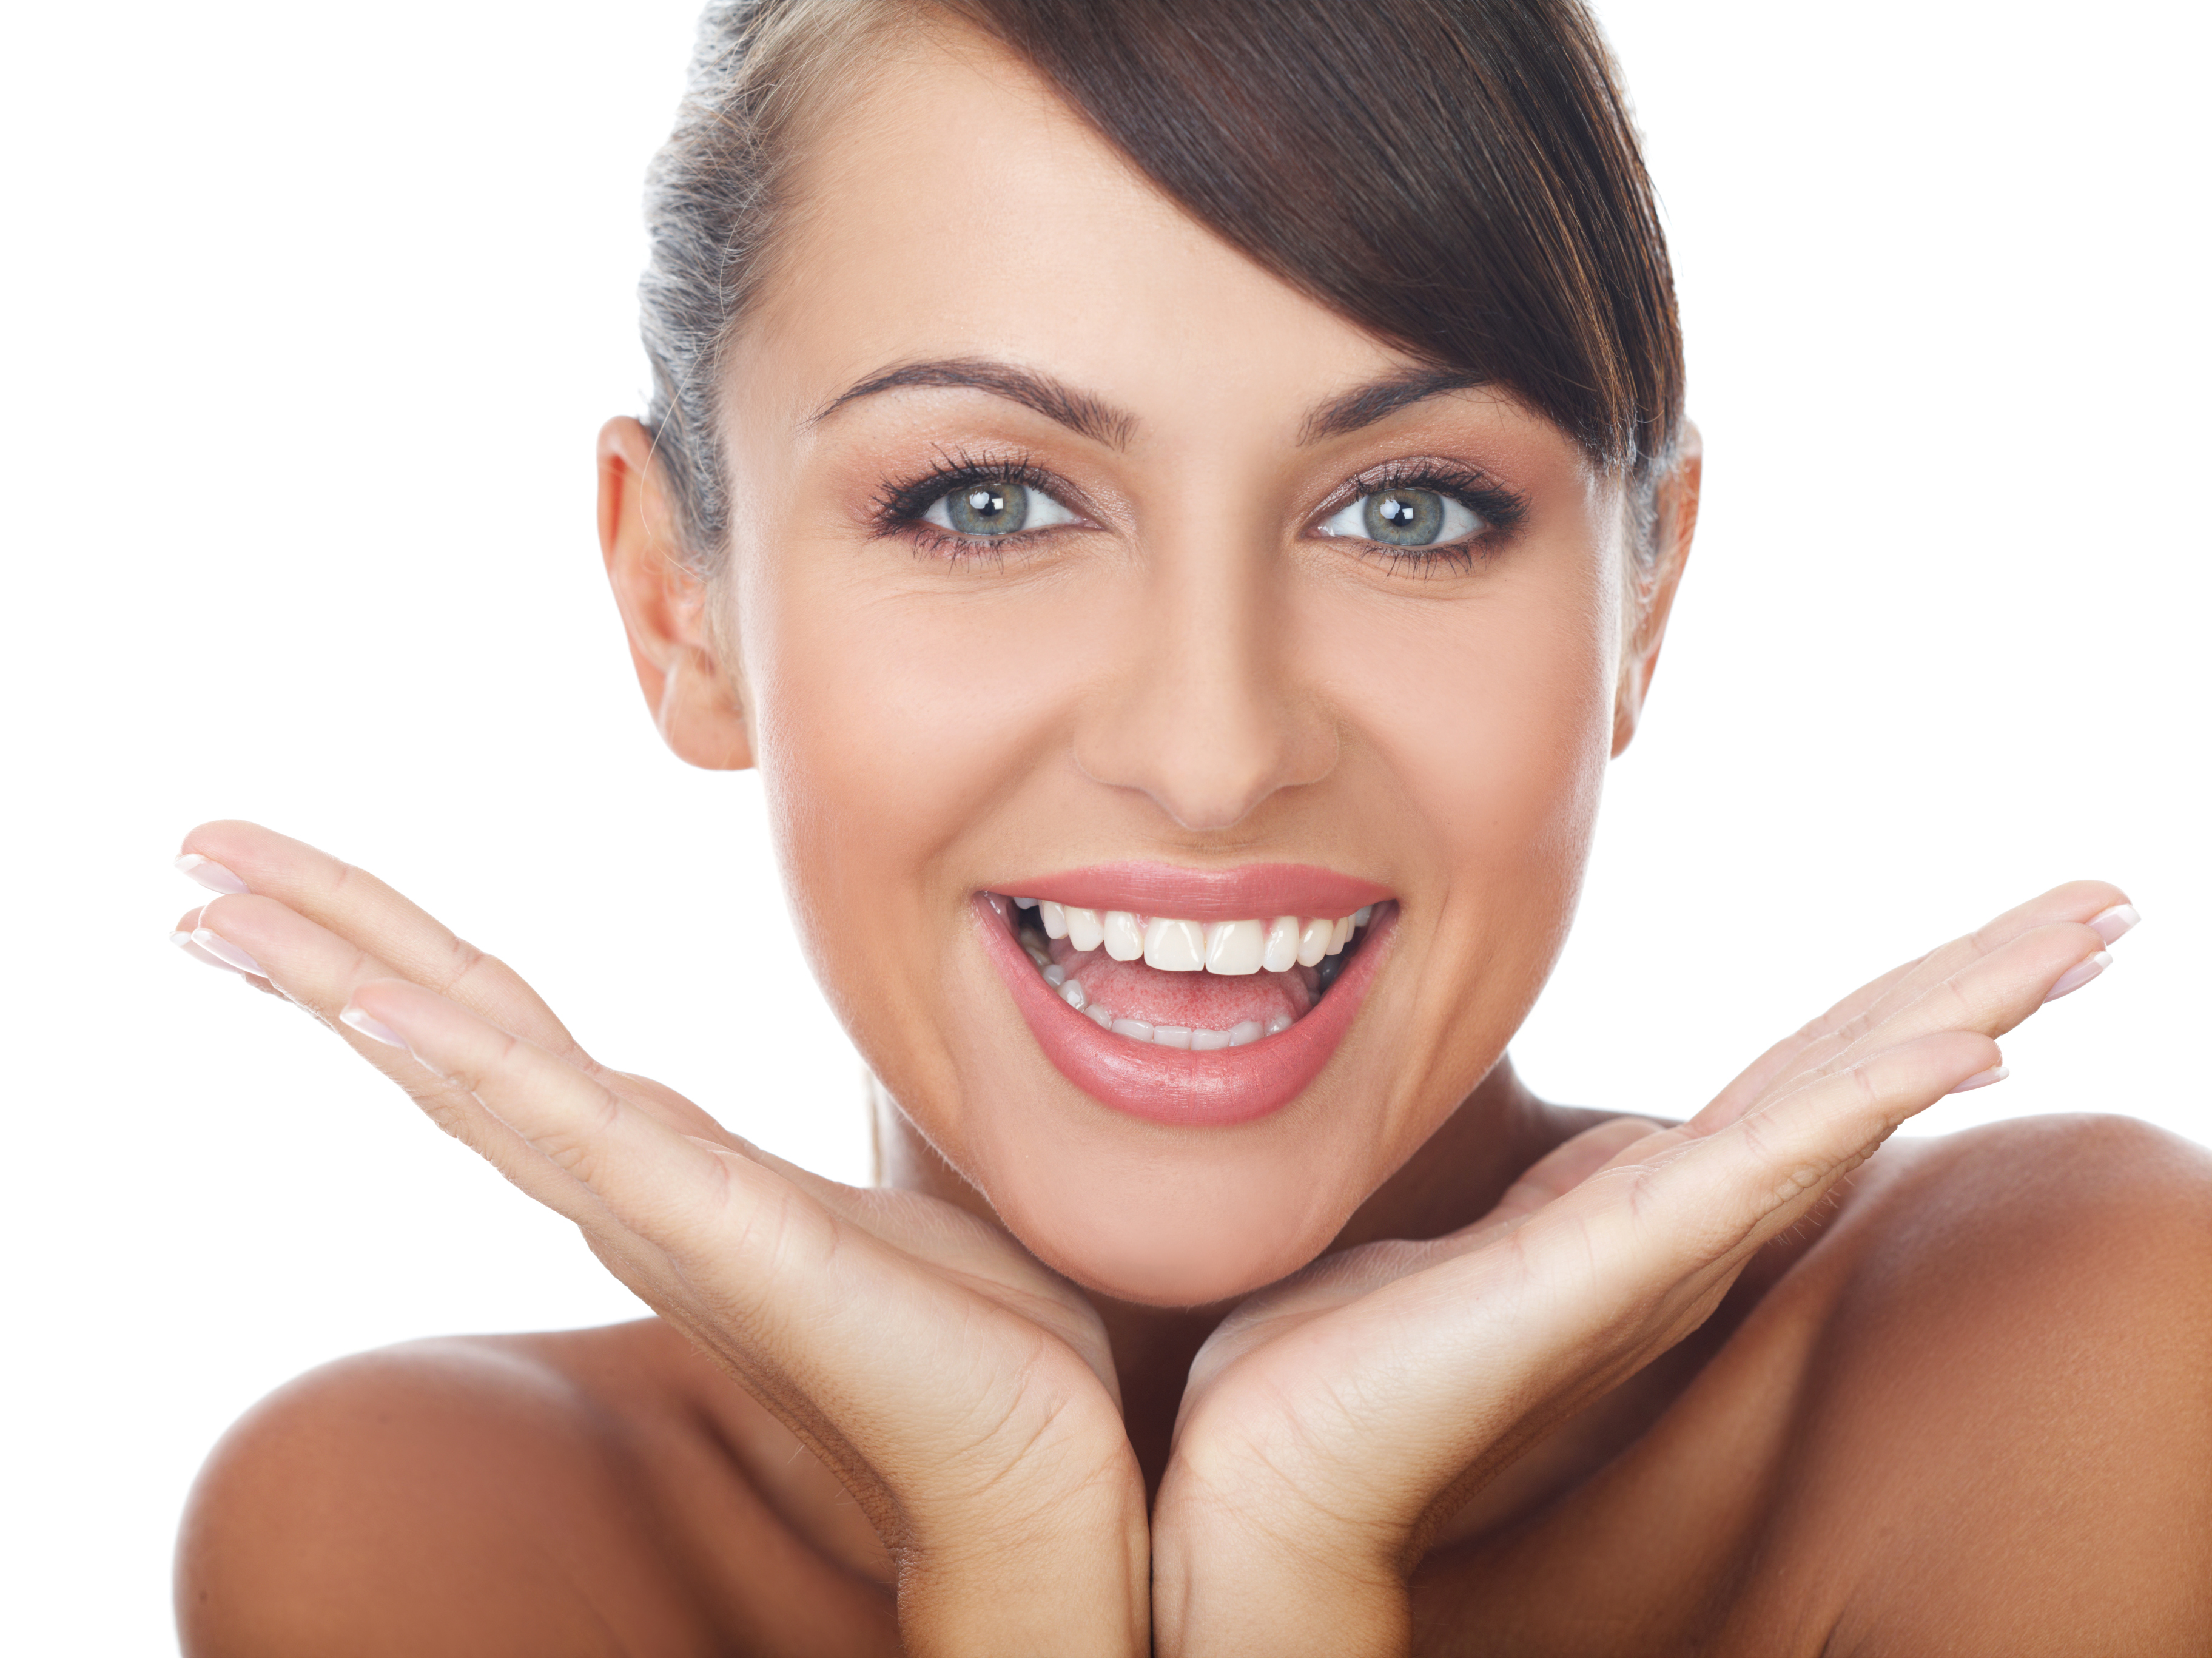 Dr. Lodding offers the best periodontics in Elgin!